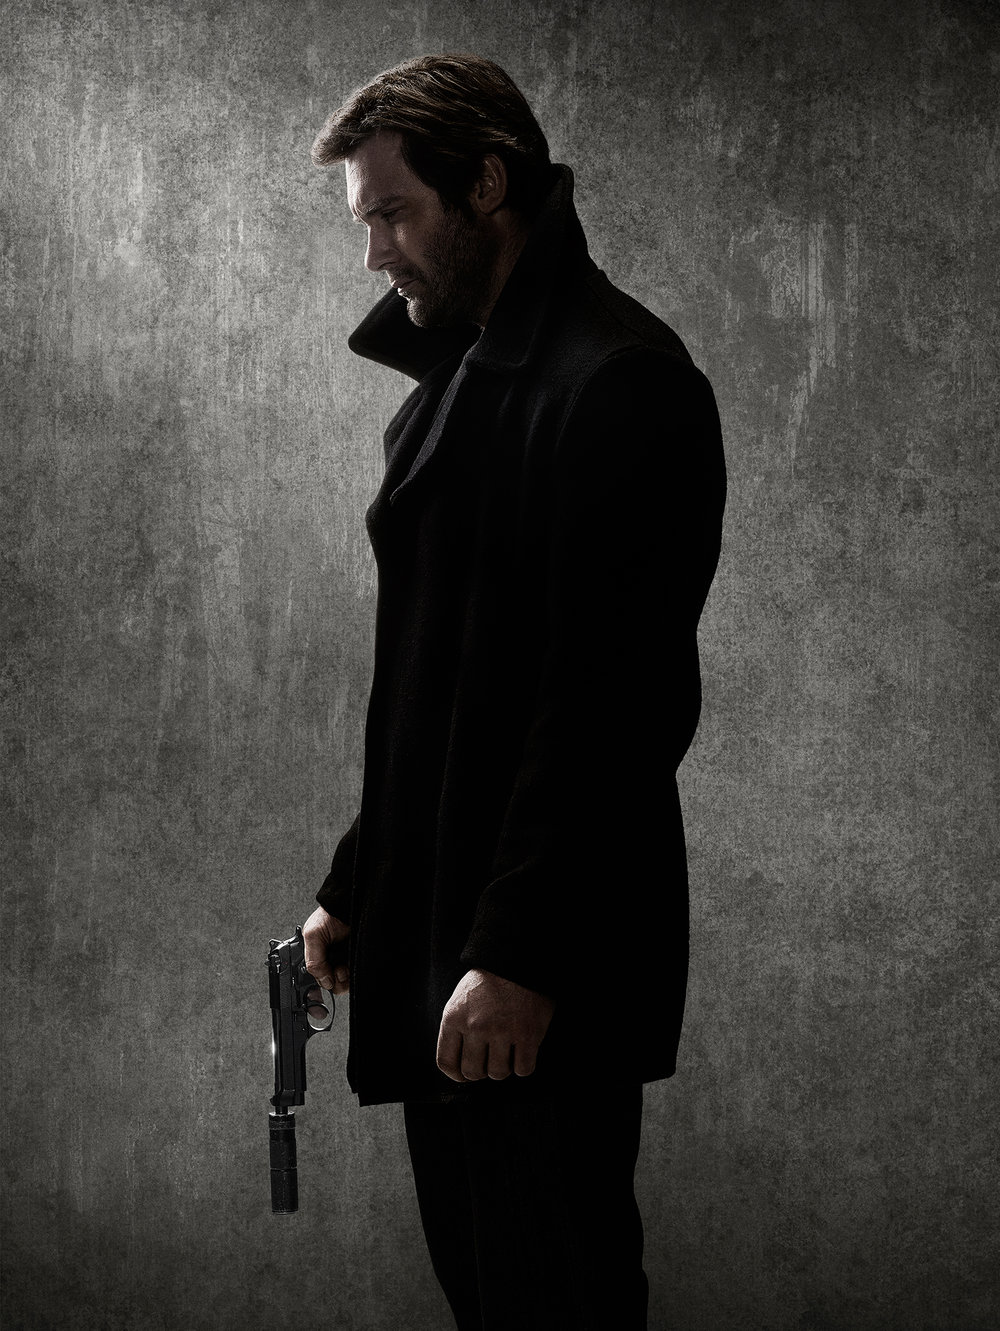 Clive Standen - for NBC's Taken - Montreal